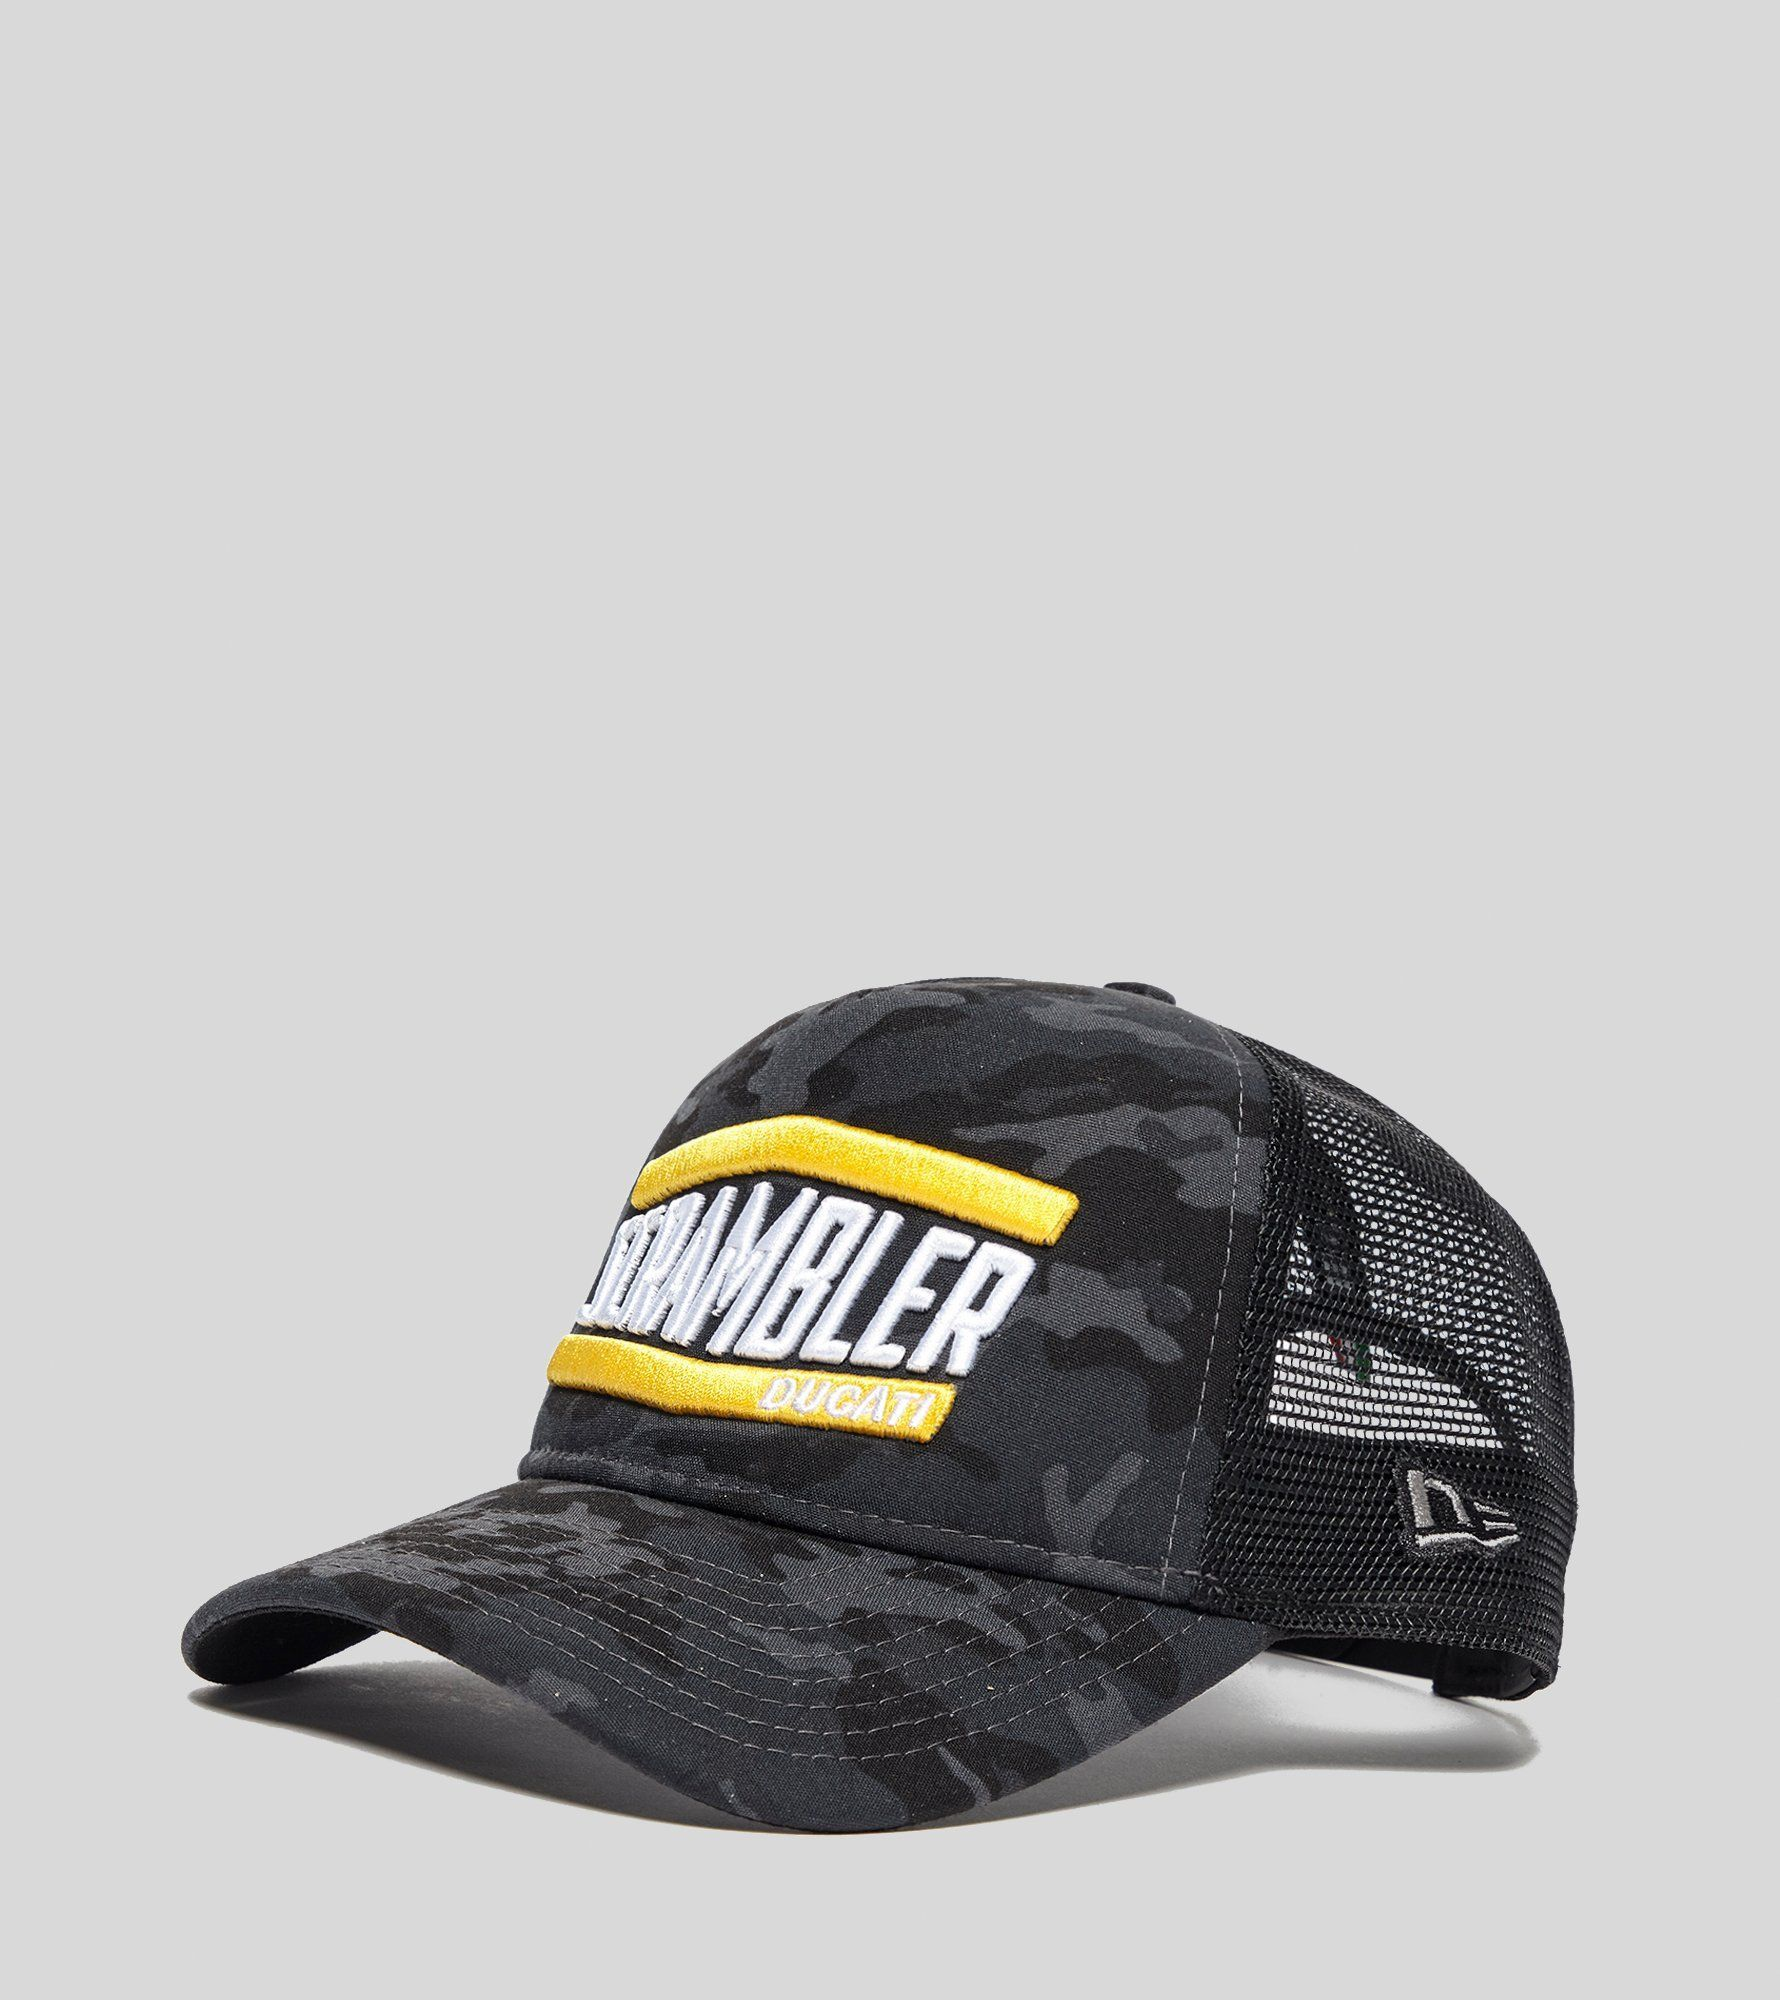 ad24c87a2941b7 New Era Ducati Trucker Cap - find out more on our site. Find the freshest  in trainers and clothing online now.